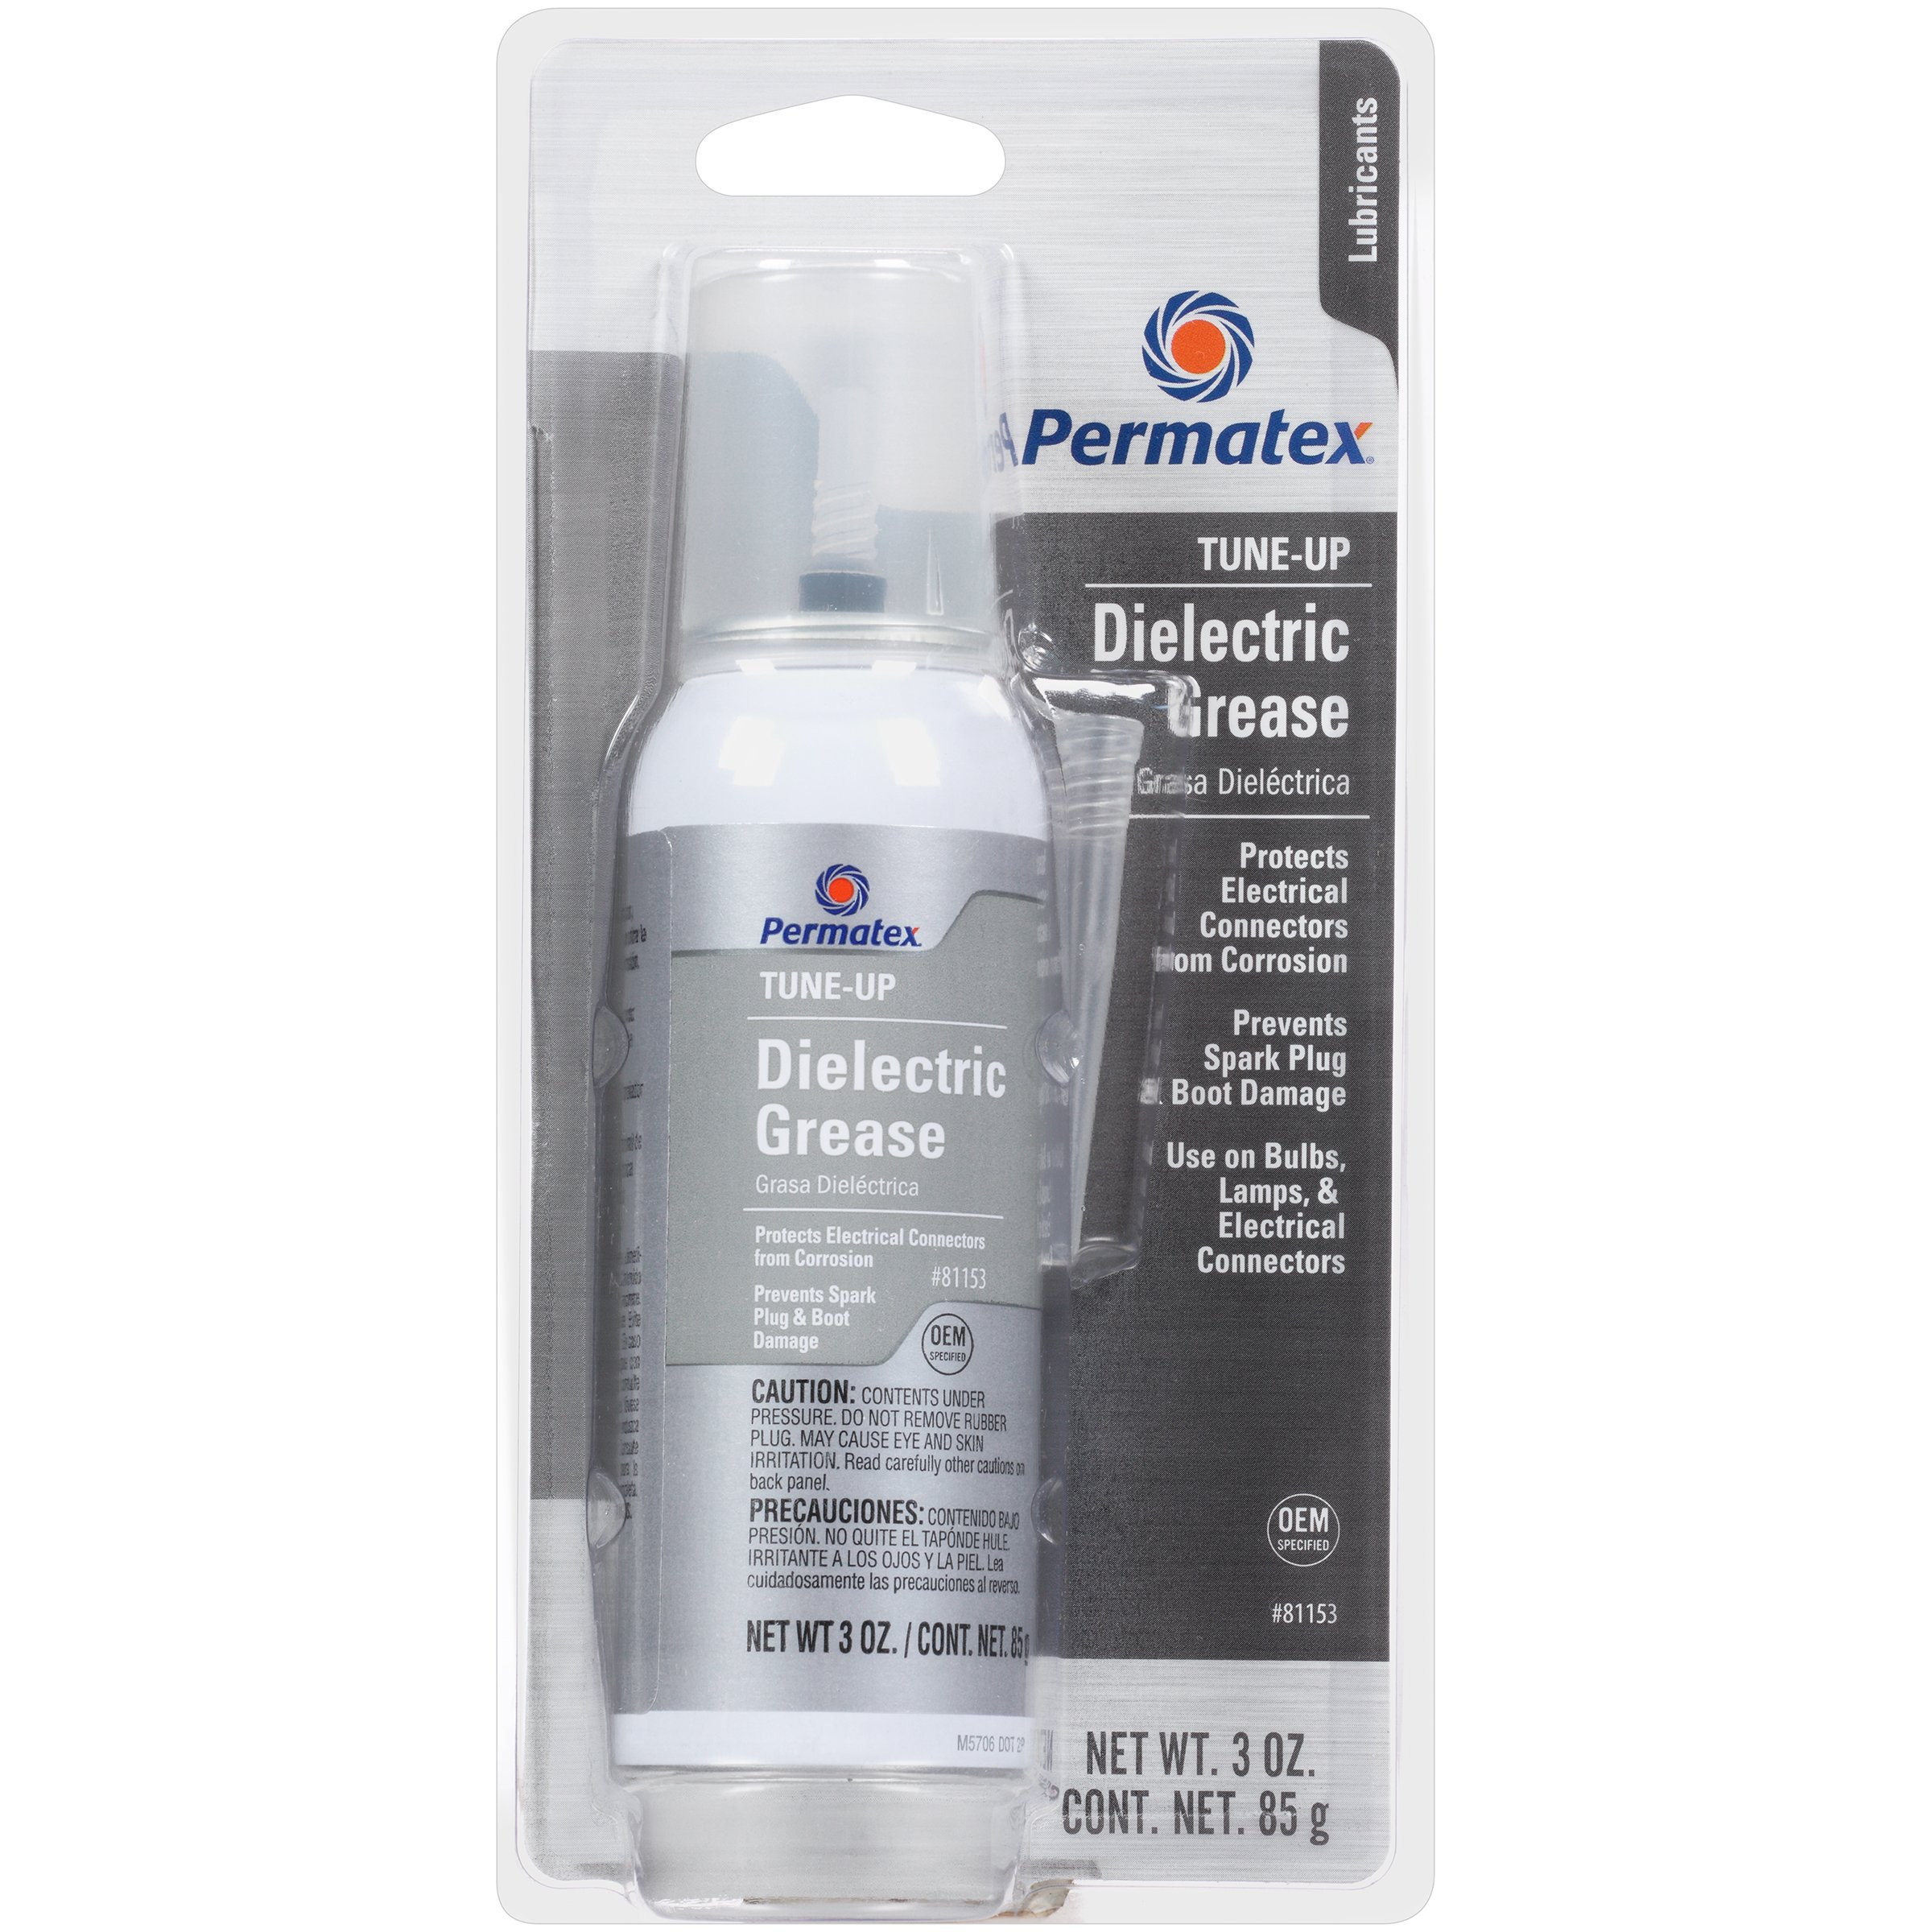 Permatex 81153-6PK Dielectric Tune-Up Grease, 3 oz. PowerCan (Pack of 6) by Permatex (Image #1)